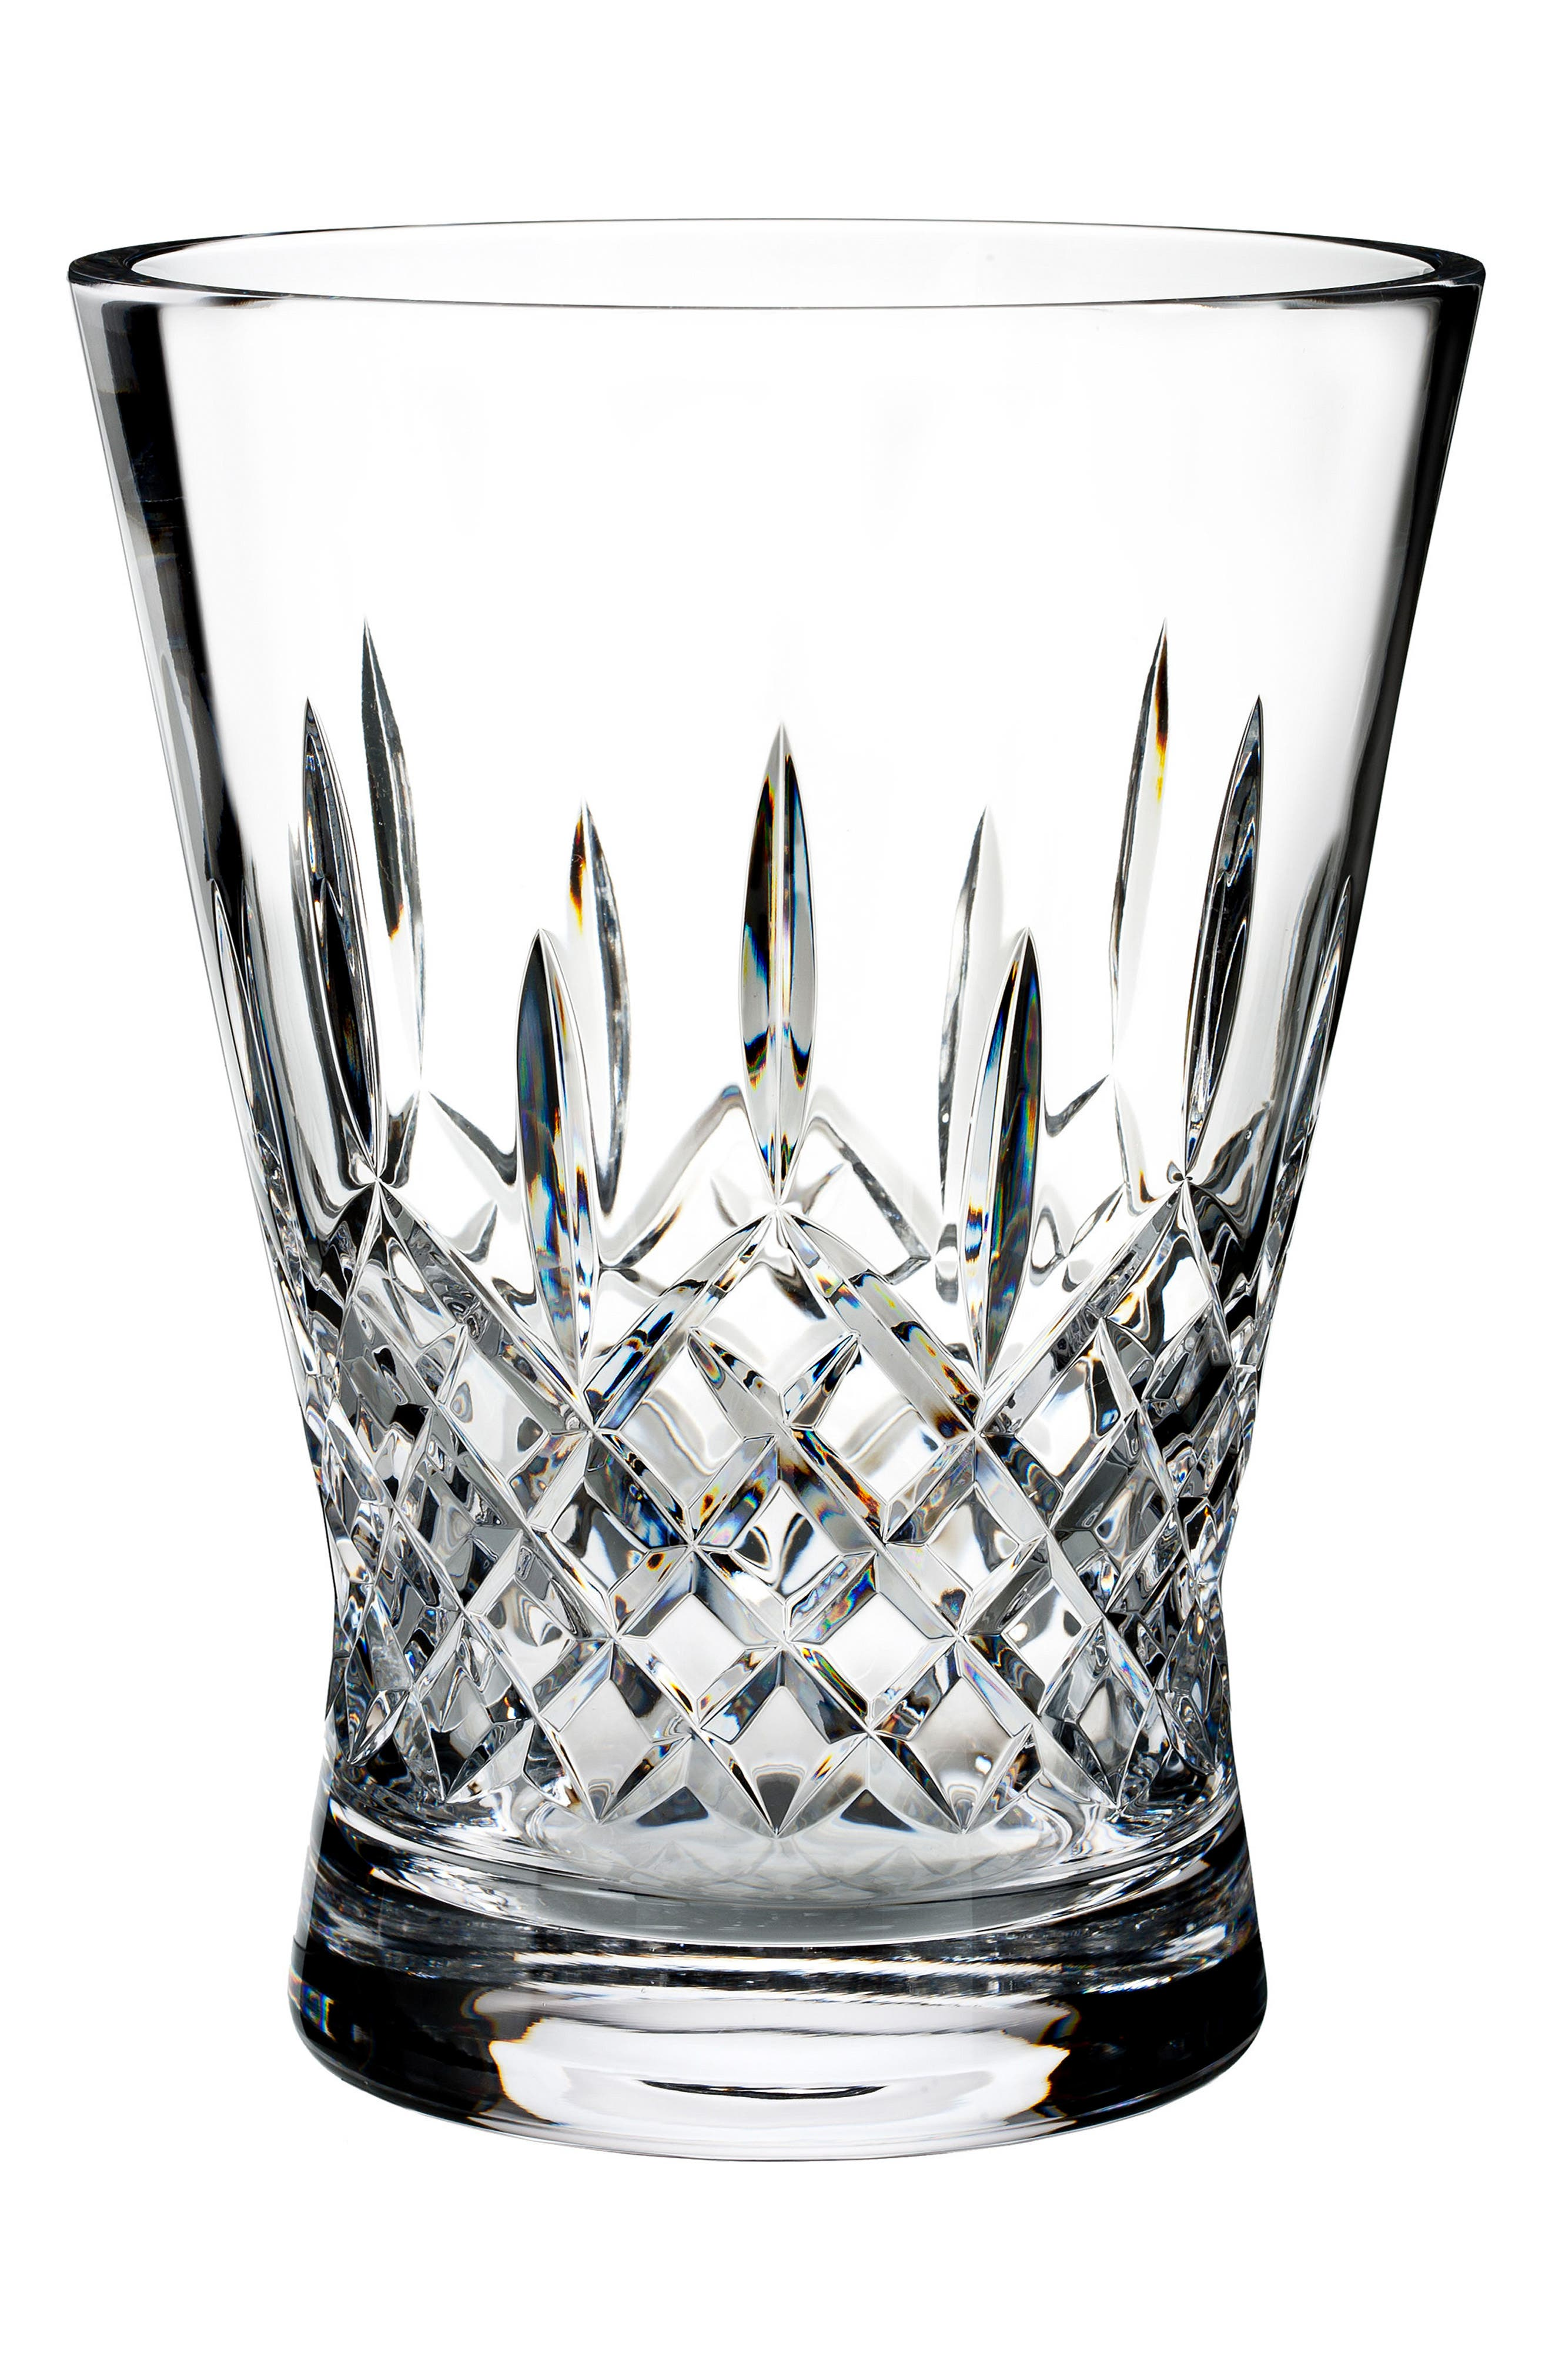 Main Image - Waterford Lismore Pops Lead Crystal Champagne Bucket